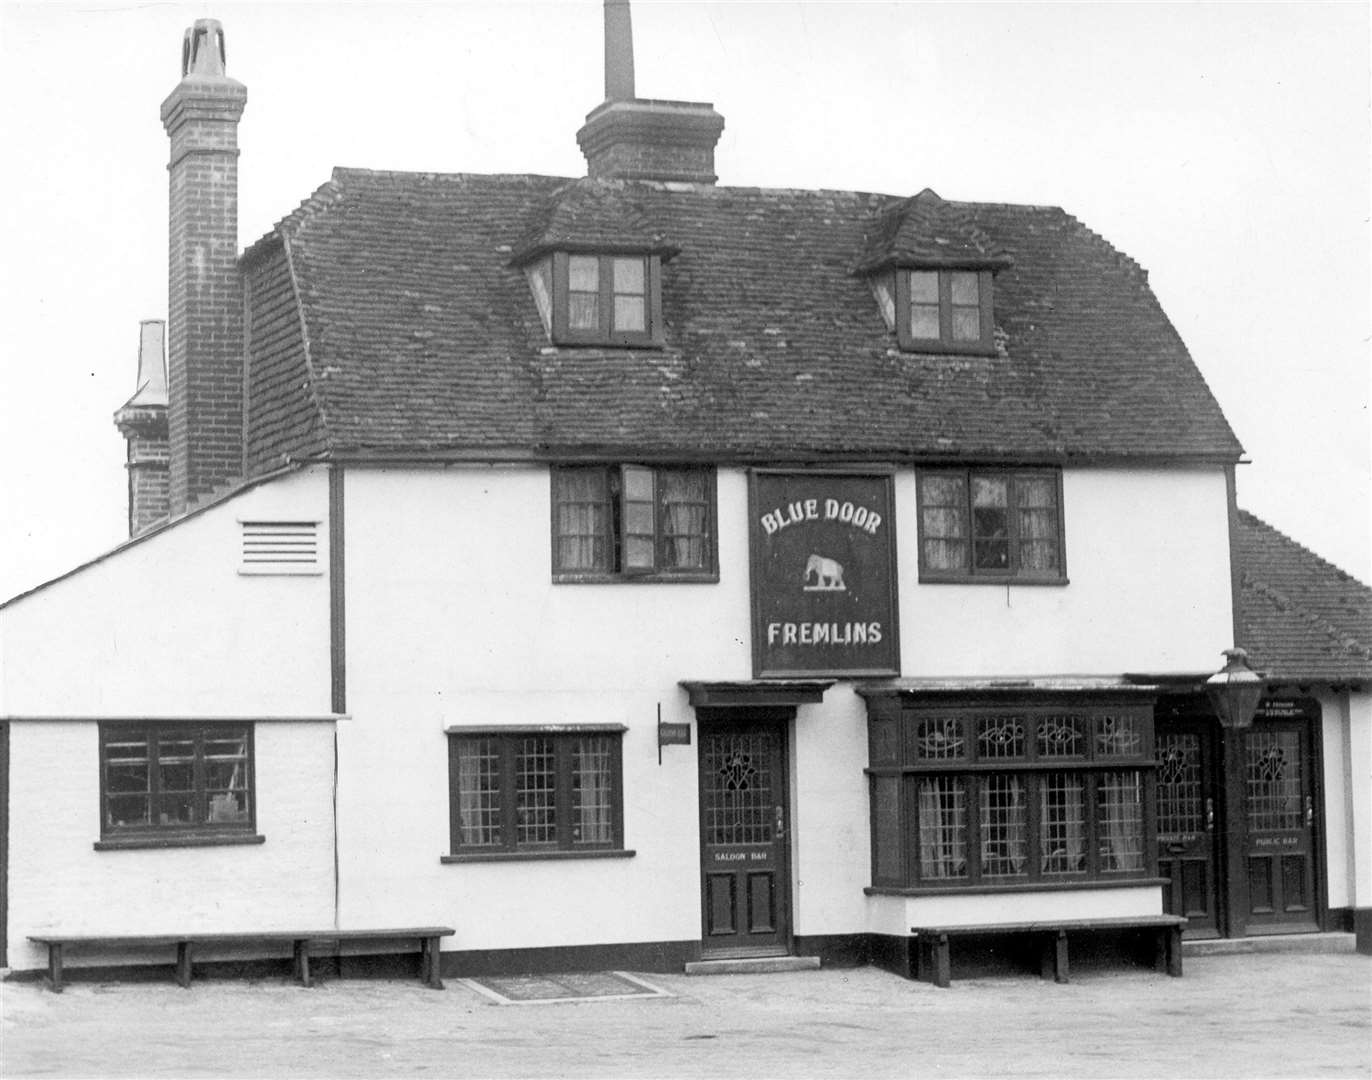 The old Blue Door public house in Sutton Road, Maidstone in March 1937